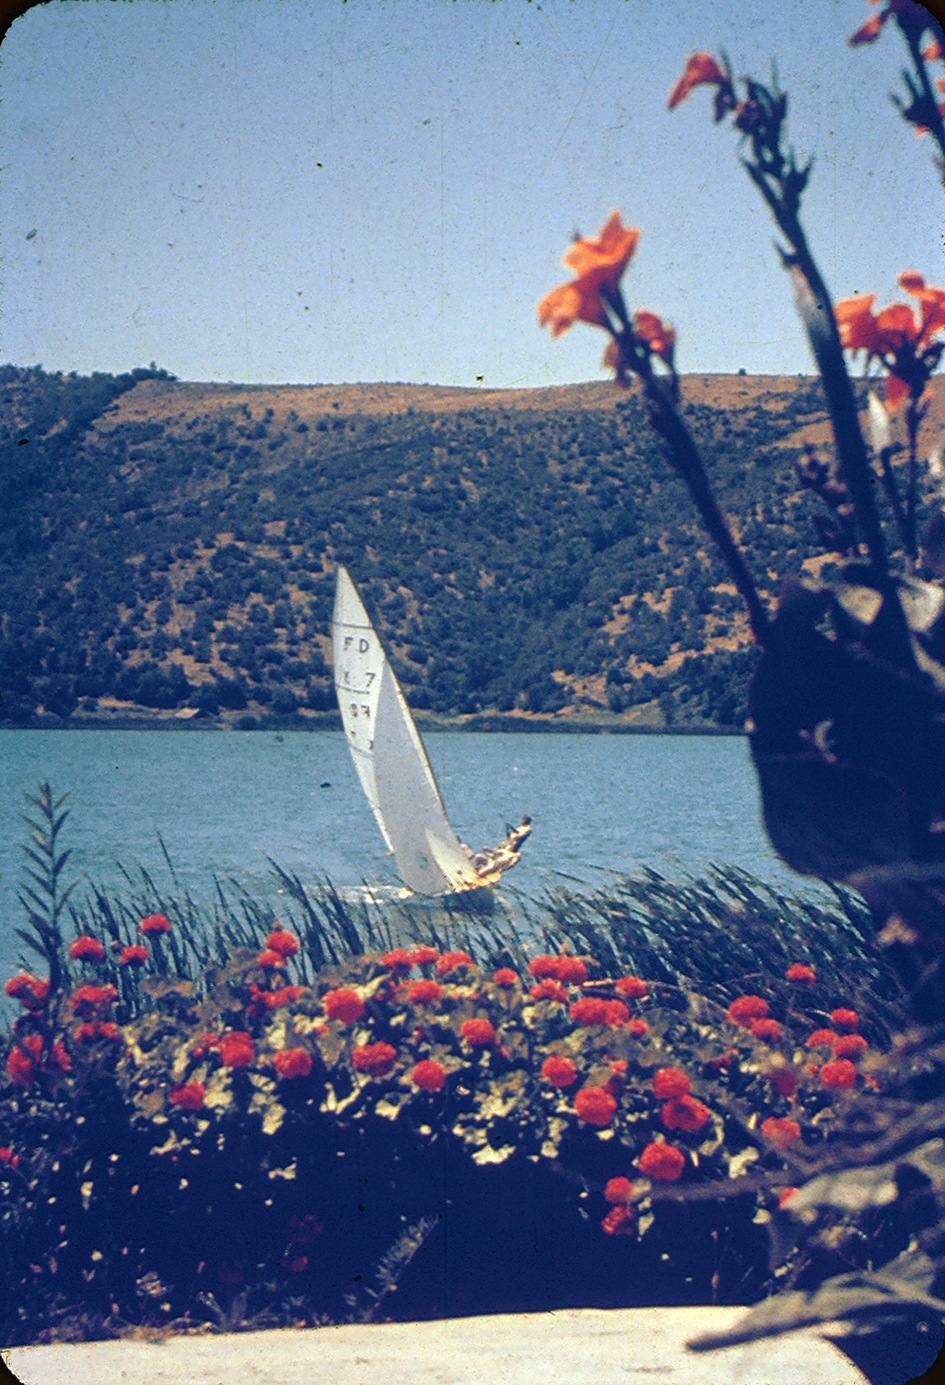 Enterreno - Fotos históricas de chile - fotos antiguas de Chile - Lago Vichuquen, 1960s